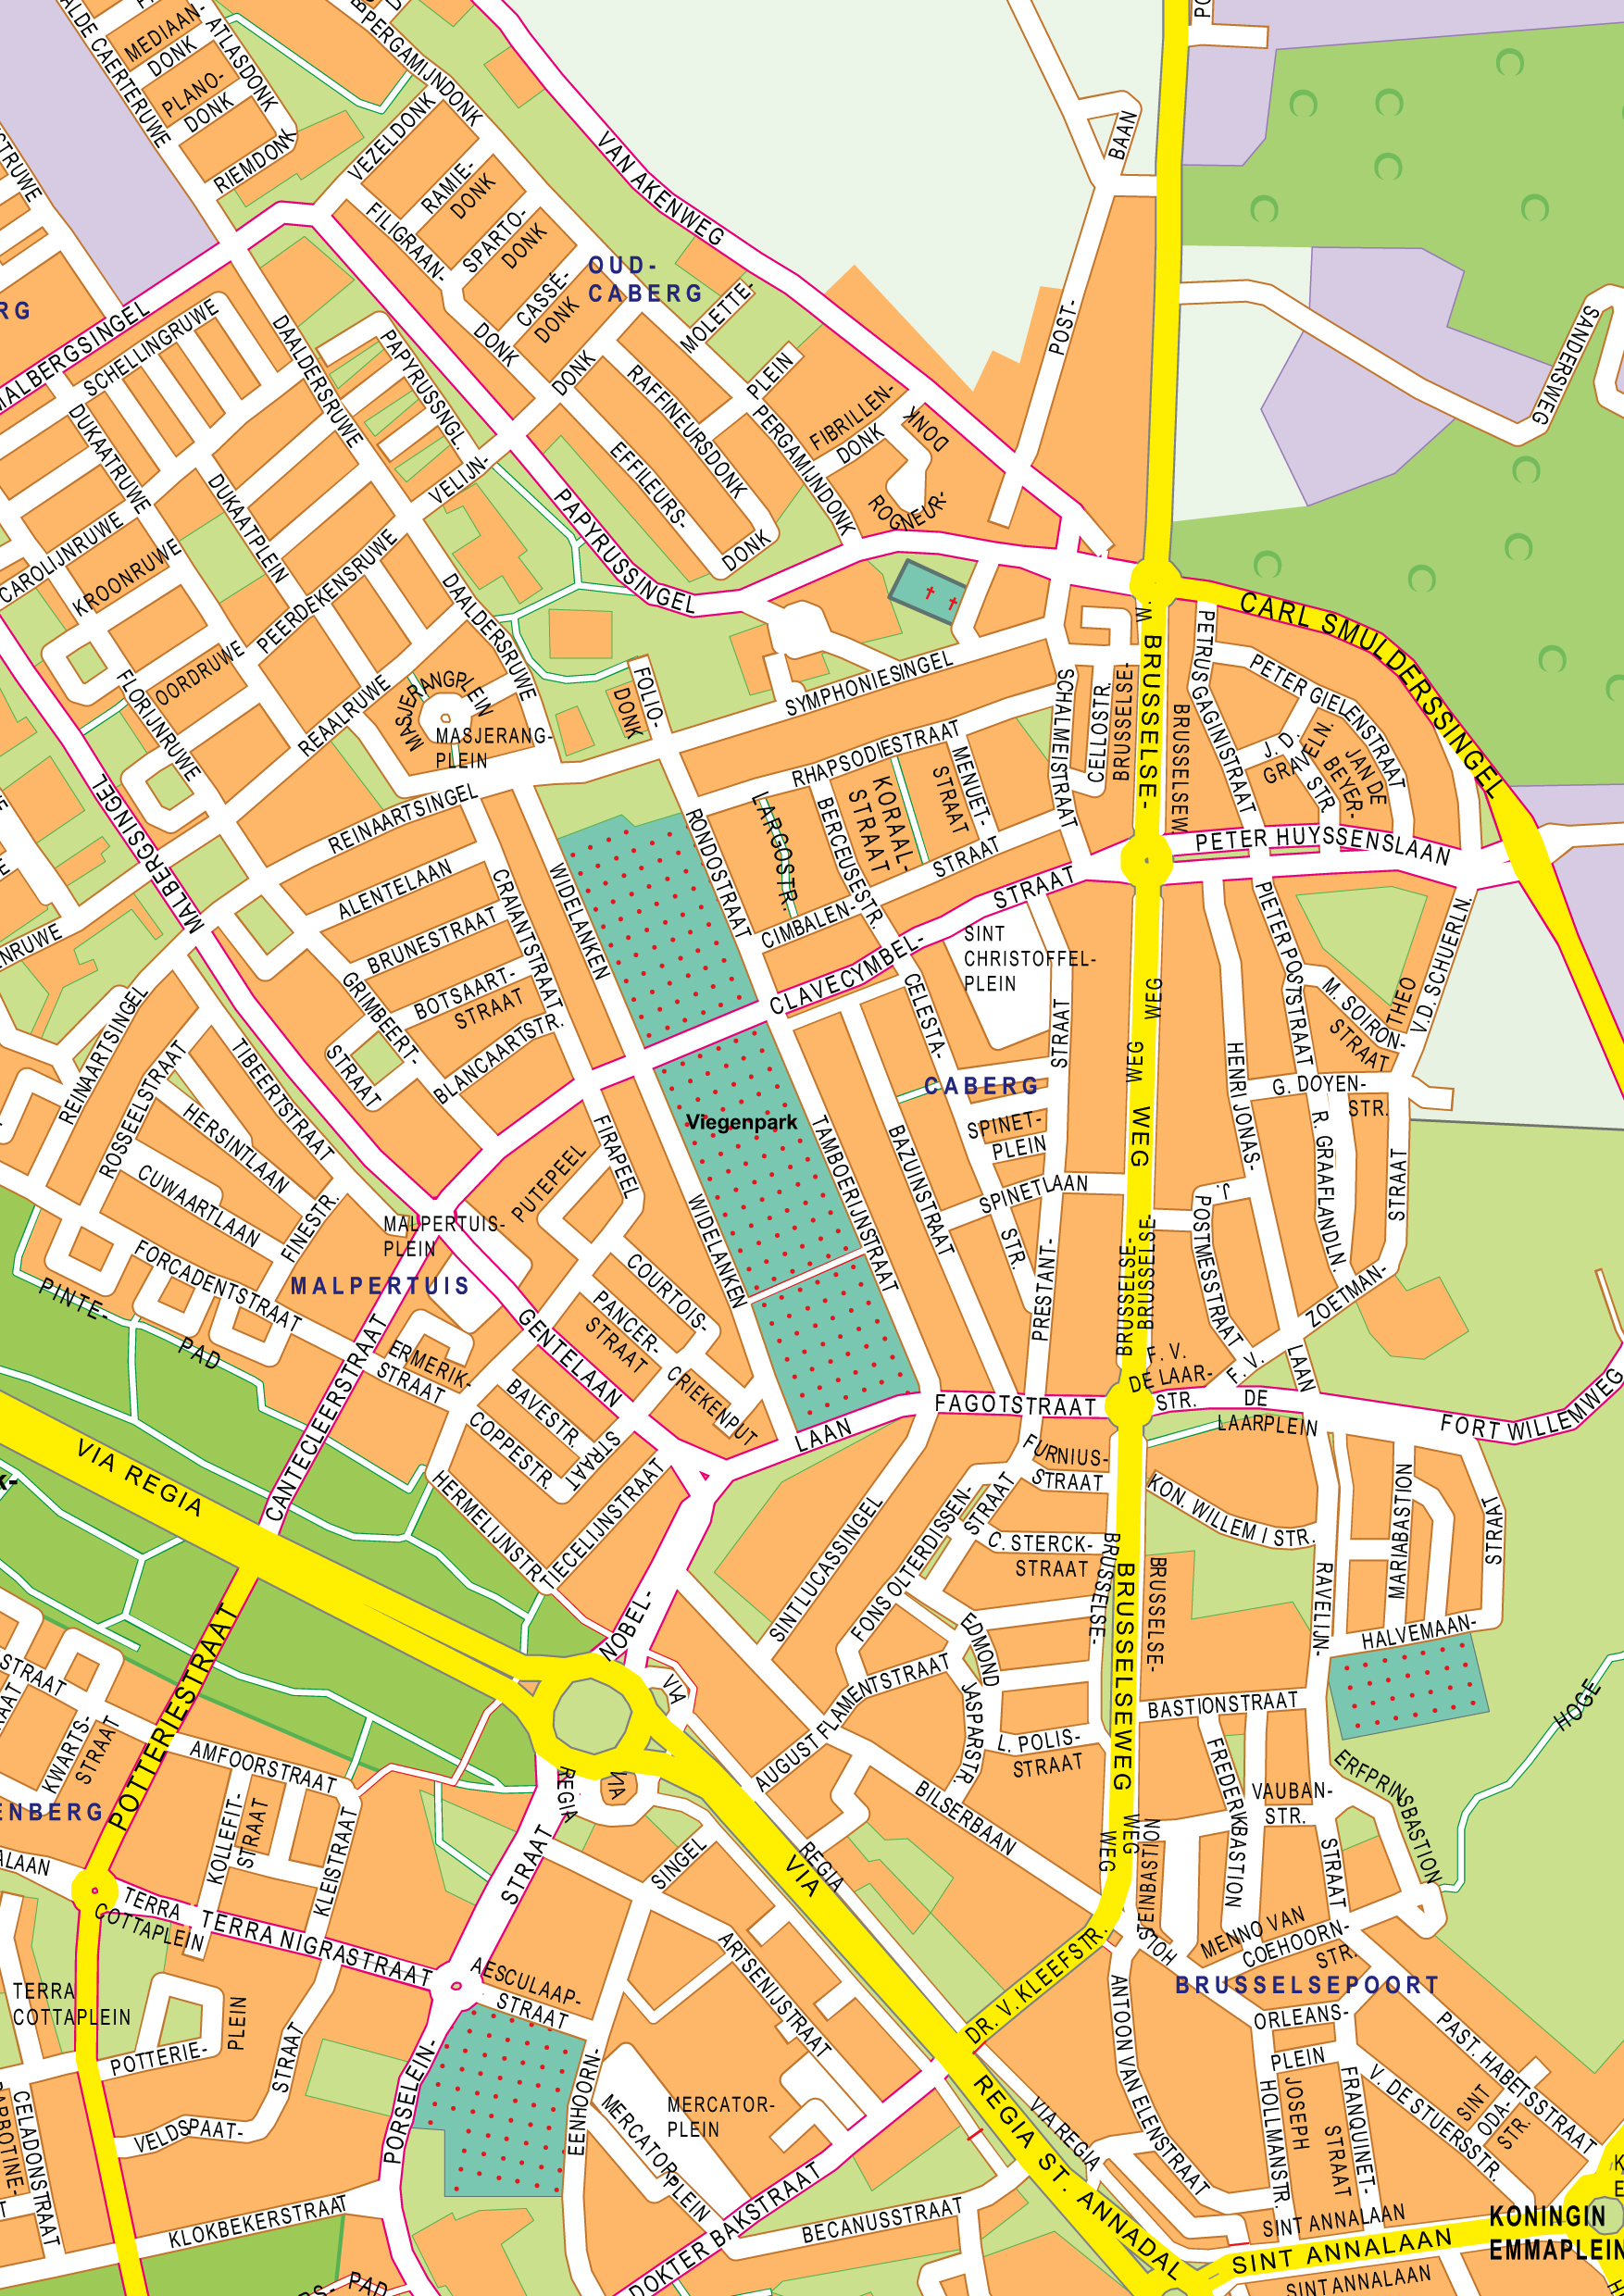 Digital City Map Maastricht 401 The World of Mapscom